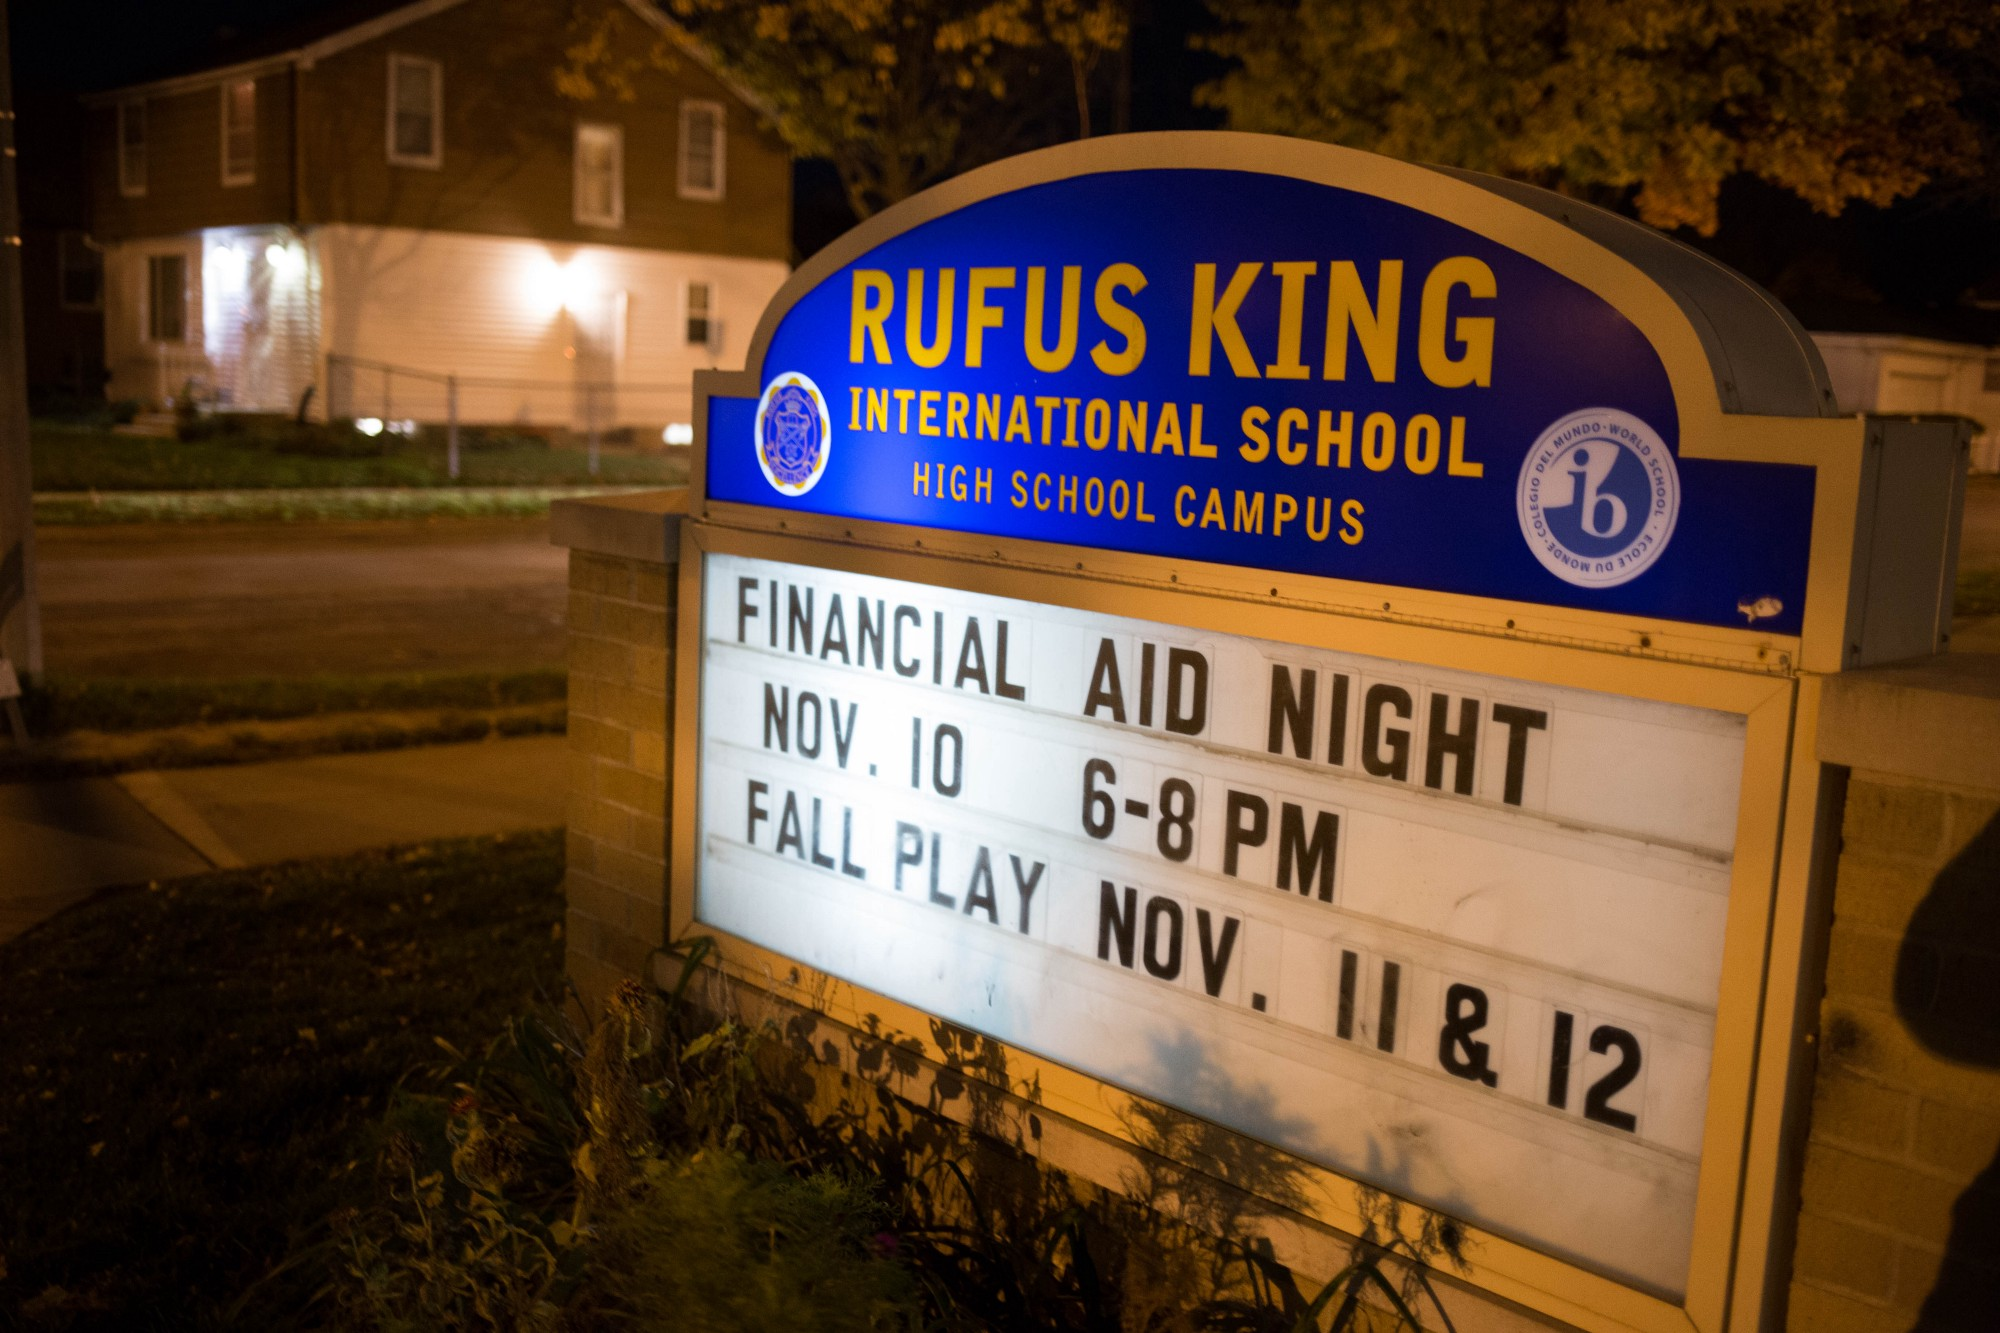 rufus king high school application